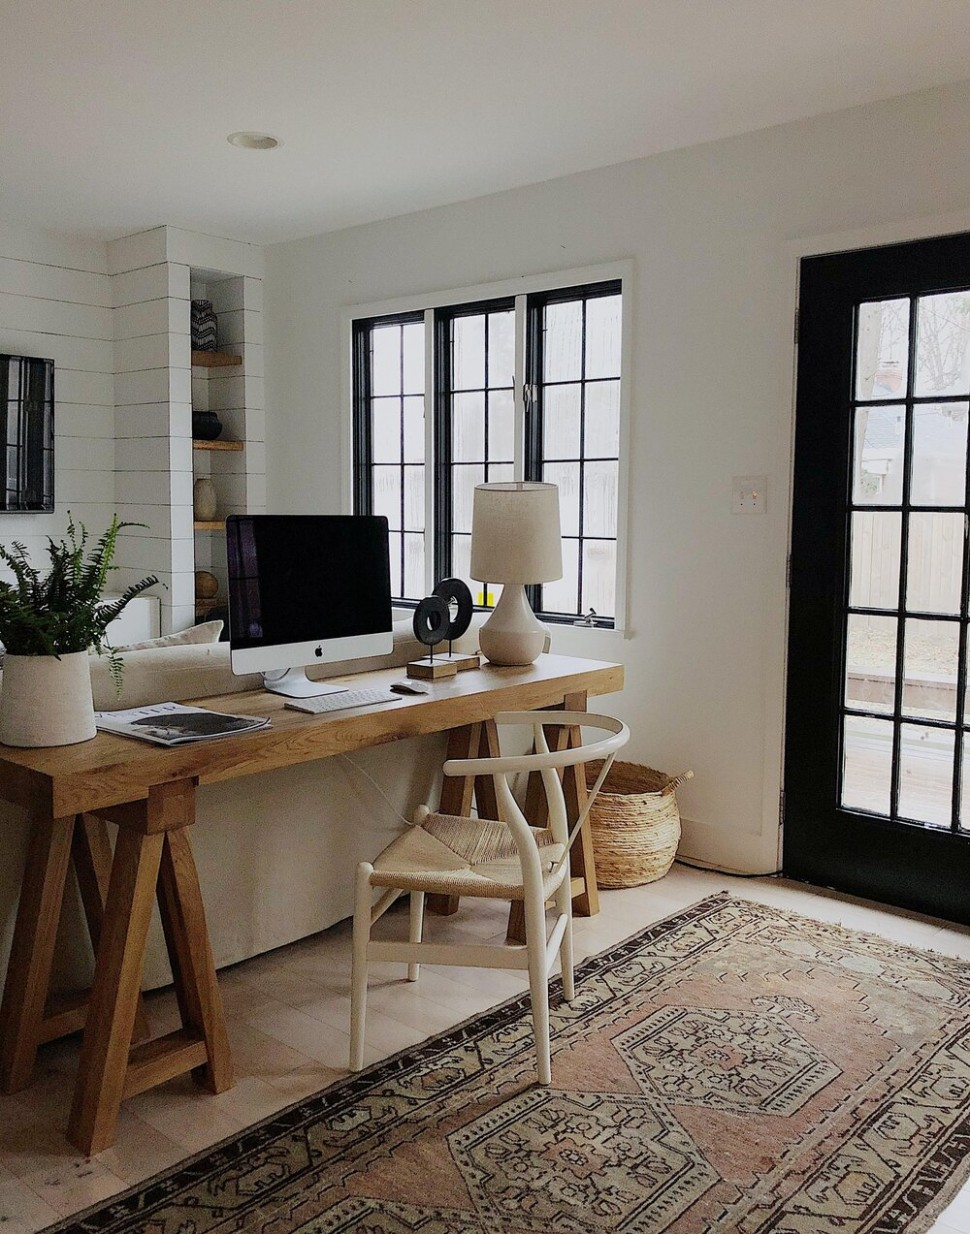 12+ Inspiring Small Home Office Ideas — THE NORDROOM - Home Office Ideas Small